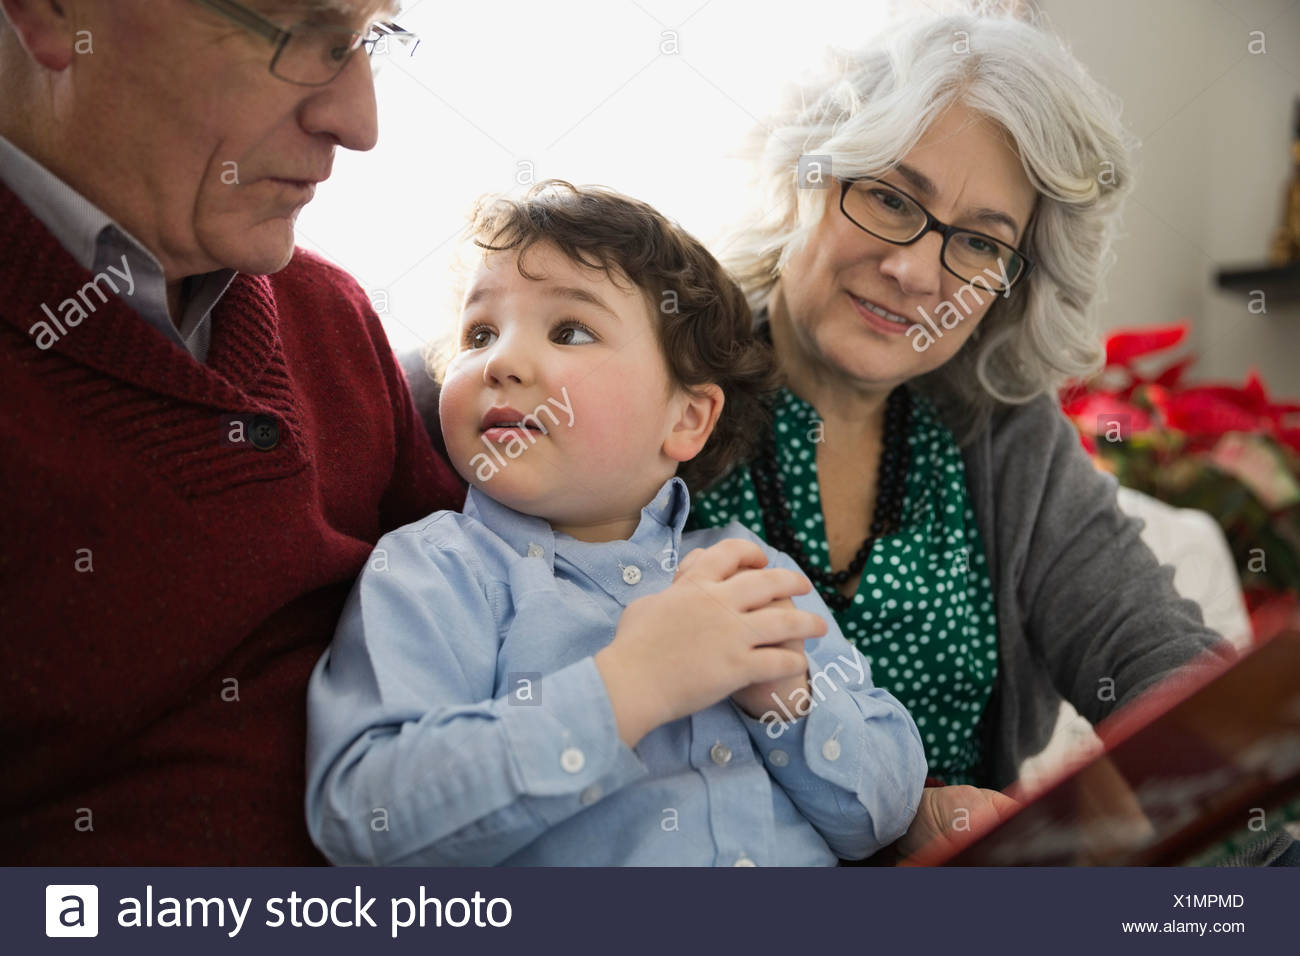 Grandson with grandparents at home during Christmas - Stock Image